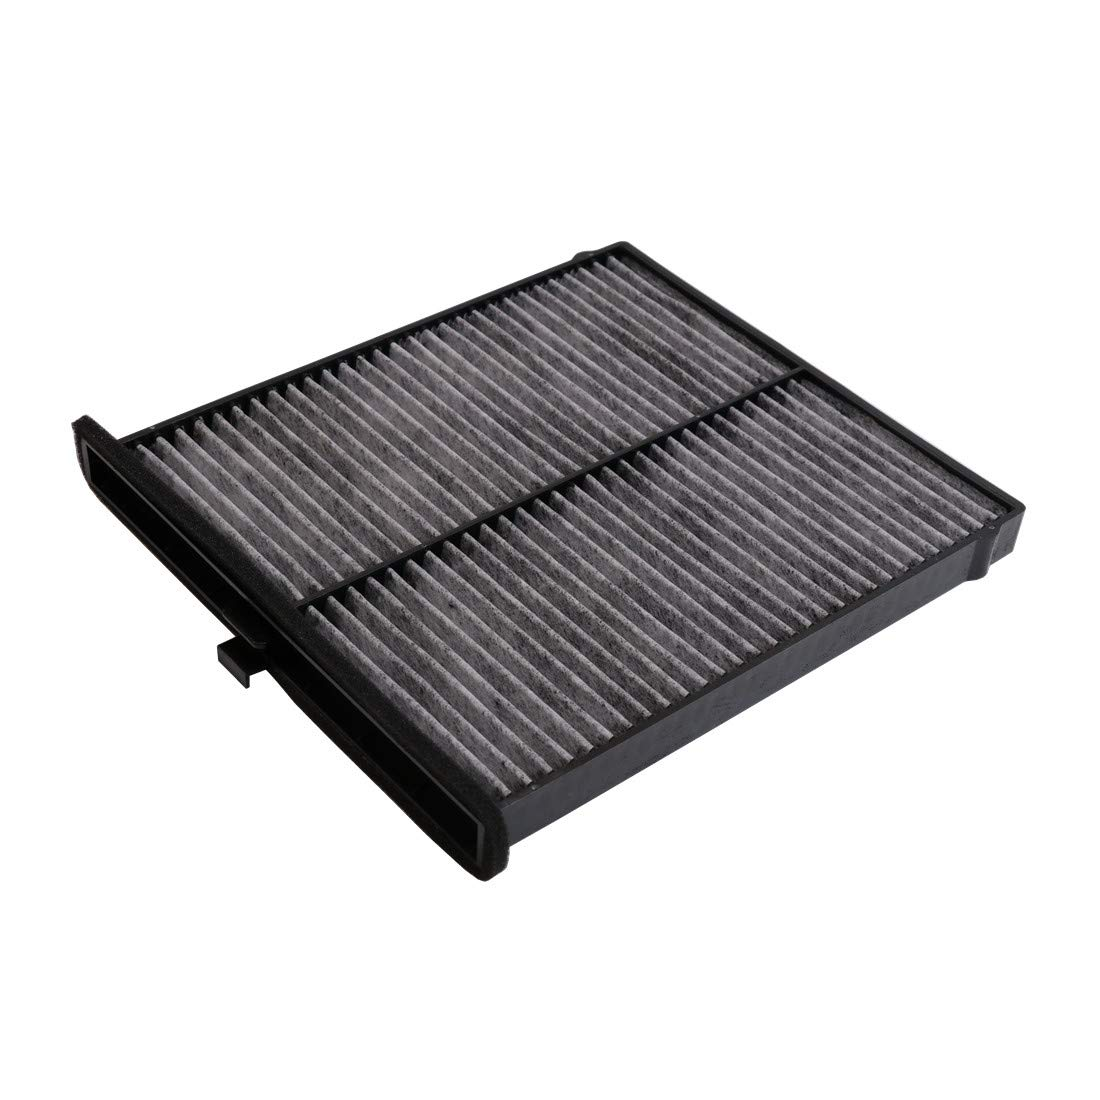 KD45-61-J7X 2-Pack for Mazda includes Activated Carbon KAFEEK Cabin Air Filter CF11811